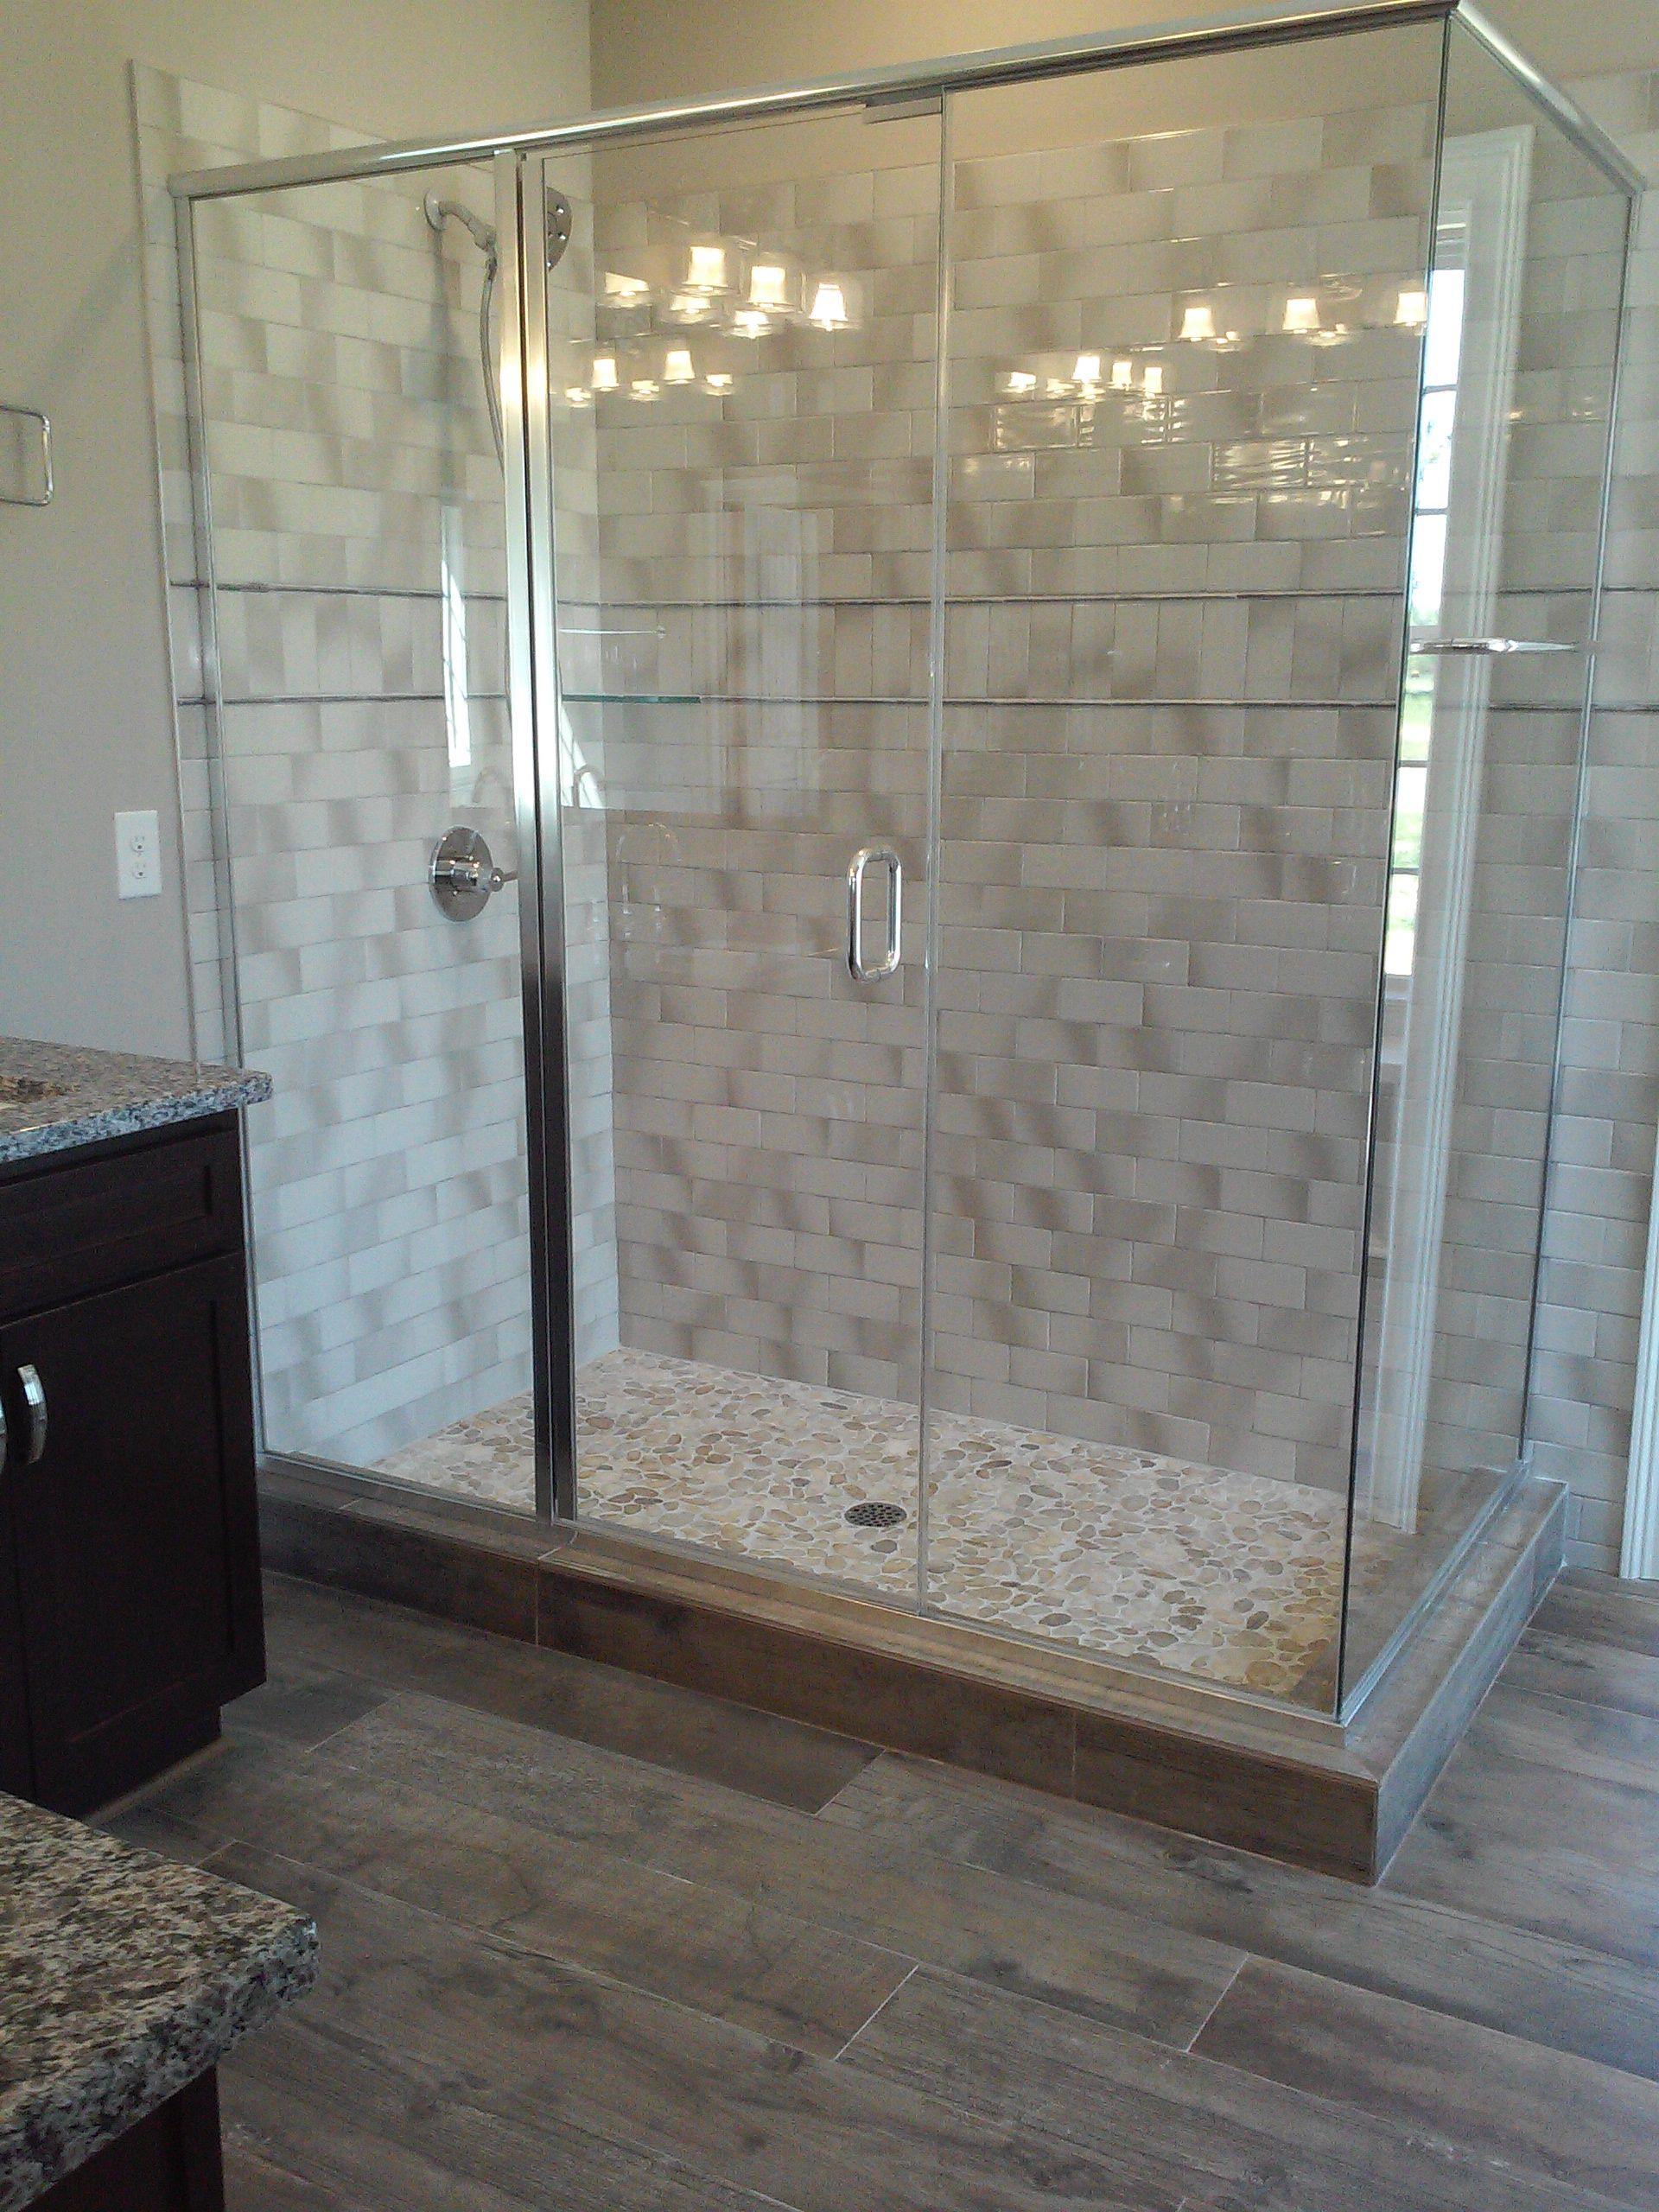 Master Bath Weathered Wood Look Tile Floor Gray Subway Tile